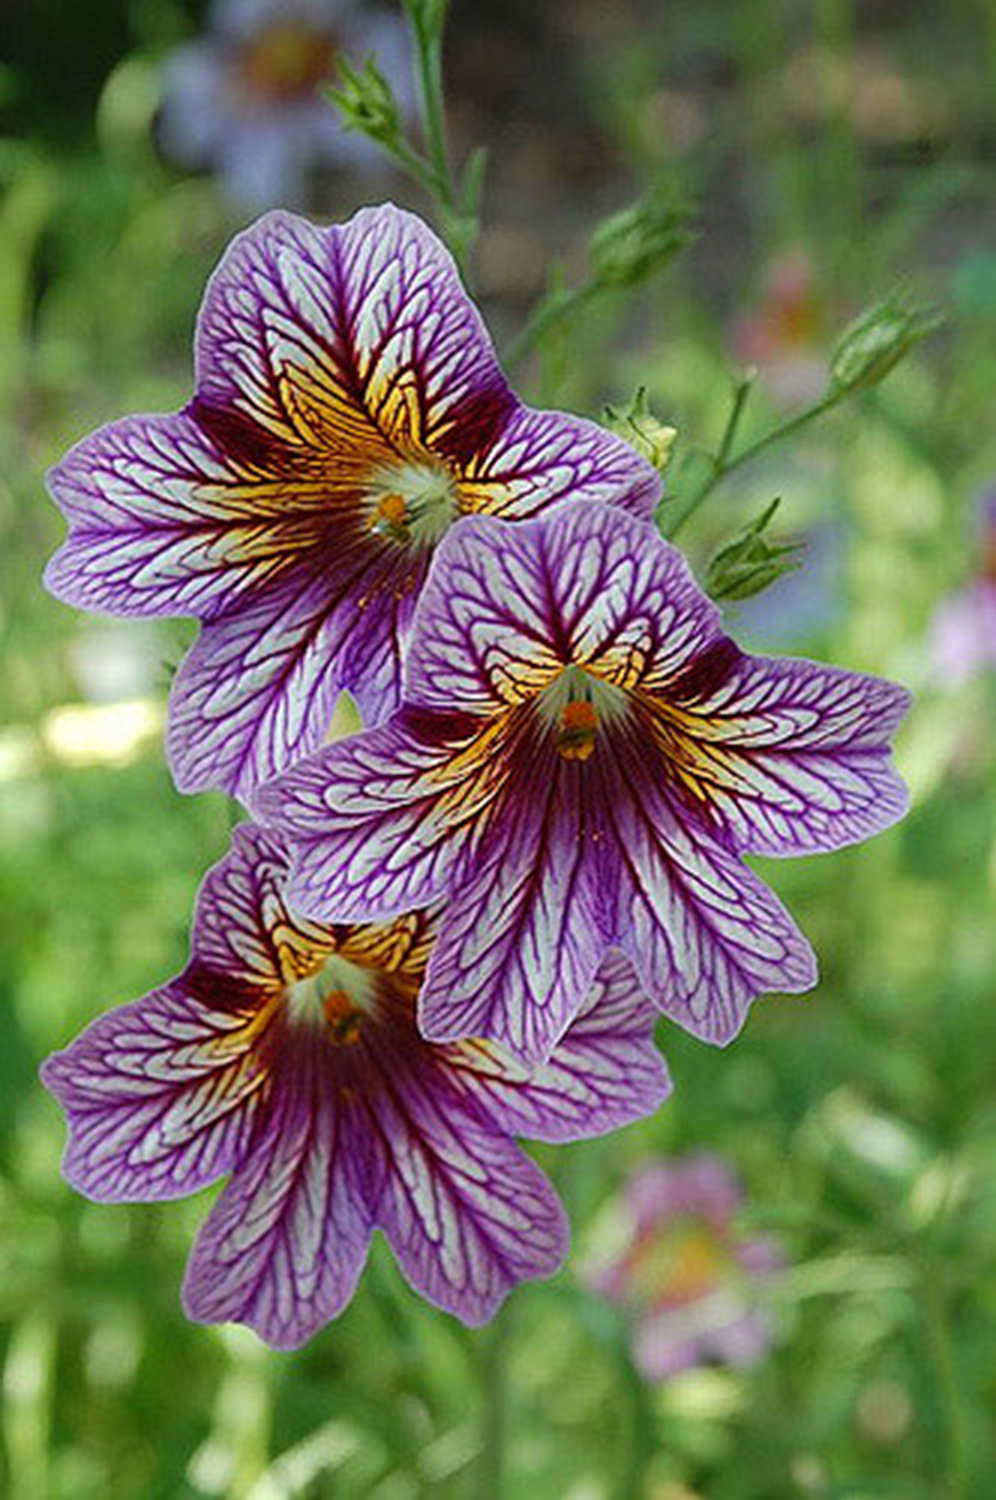 Painted Tongue,  Salpiglossis sinuatum , 'Black Trumpets', 'Kew Blue,' 'Gloomy Rival', 'Little Friends':  My friend Allison over at  Sol y Sombra Farm  was growing these, and I've been infatuated with them ever since. The patterns on their throats and their deep psychedelic colors are mesmerizing! Seeds from  Geo  and  Select Seeds .